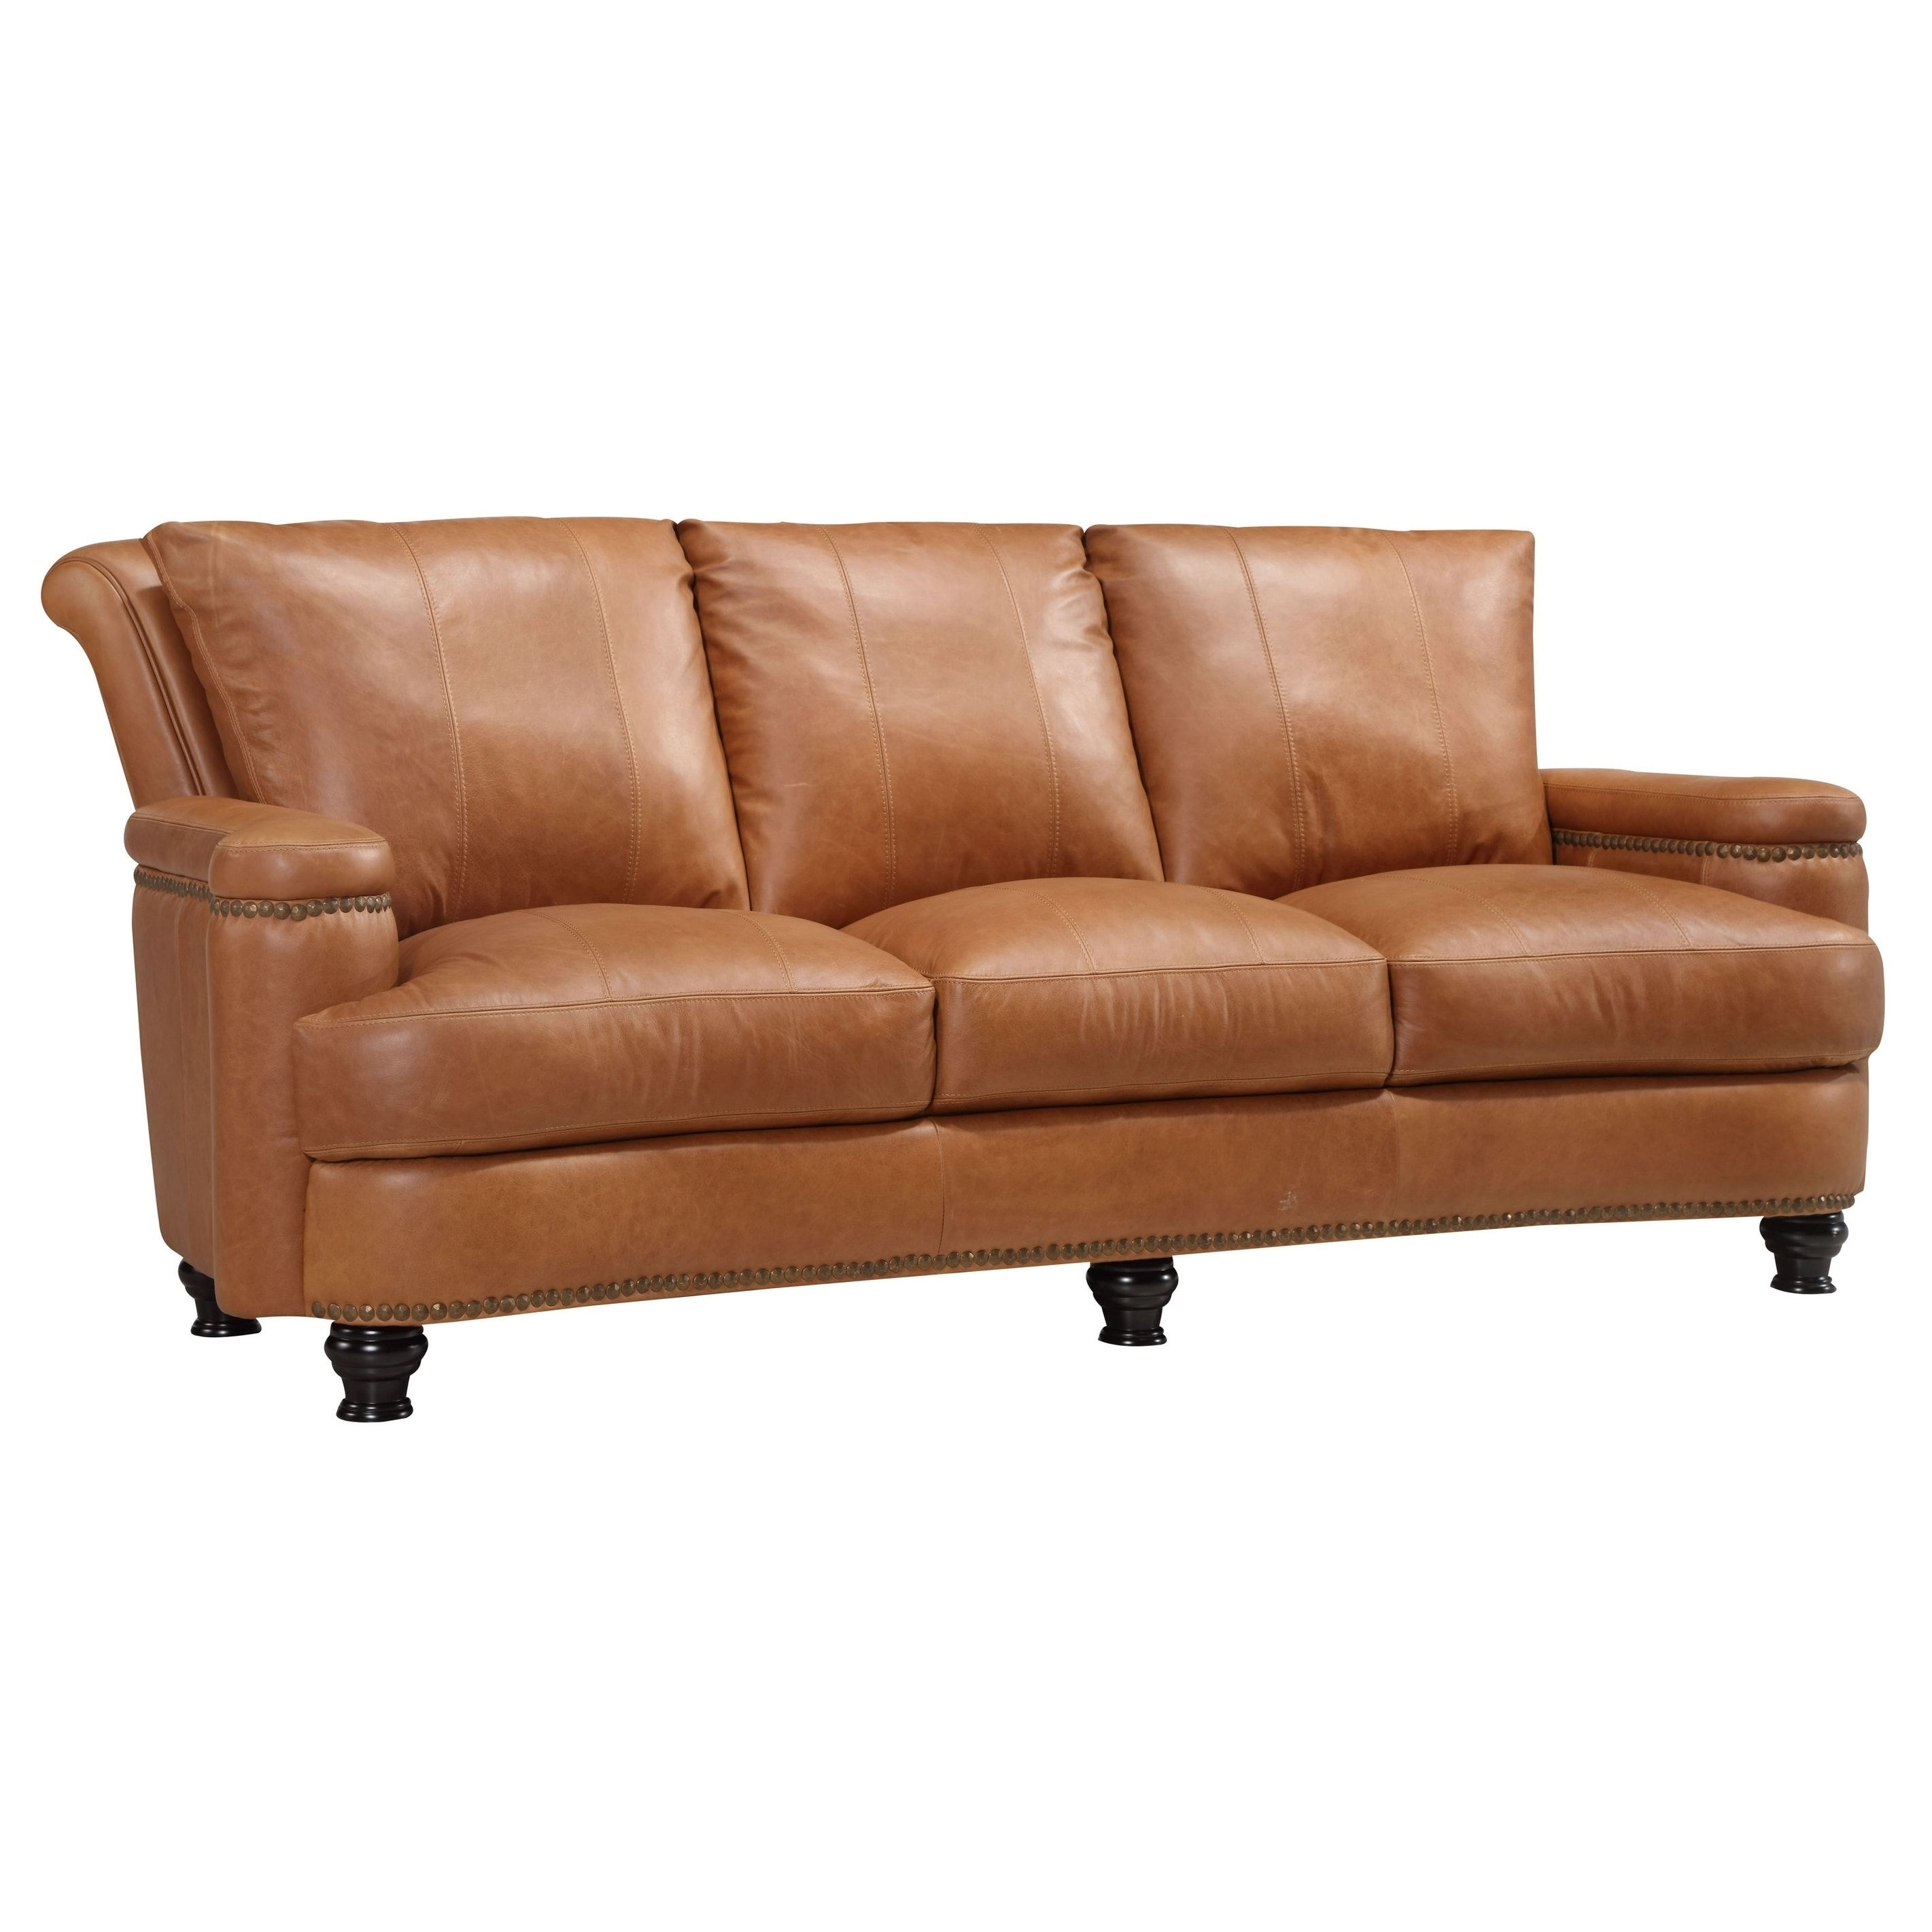 Oliver Pierce Nathan Top Grain Italian Leather Sofa, Tan | Products ...